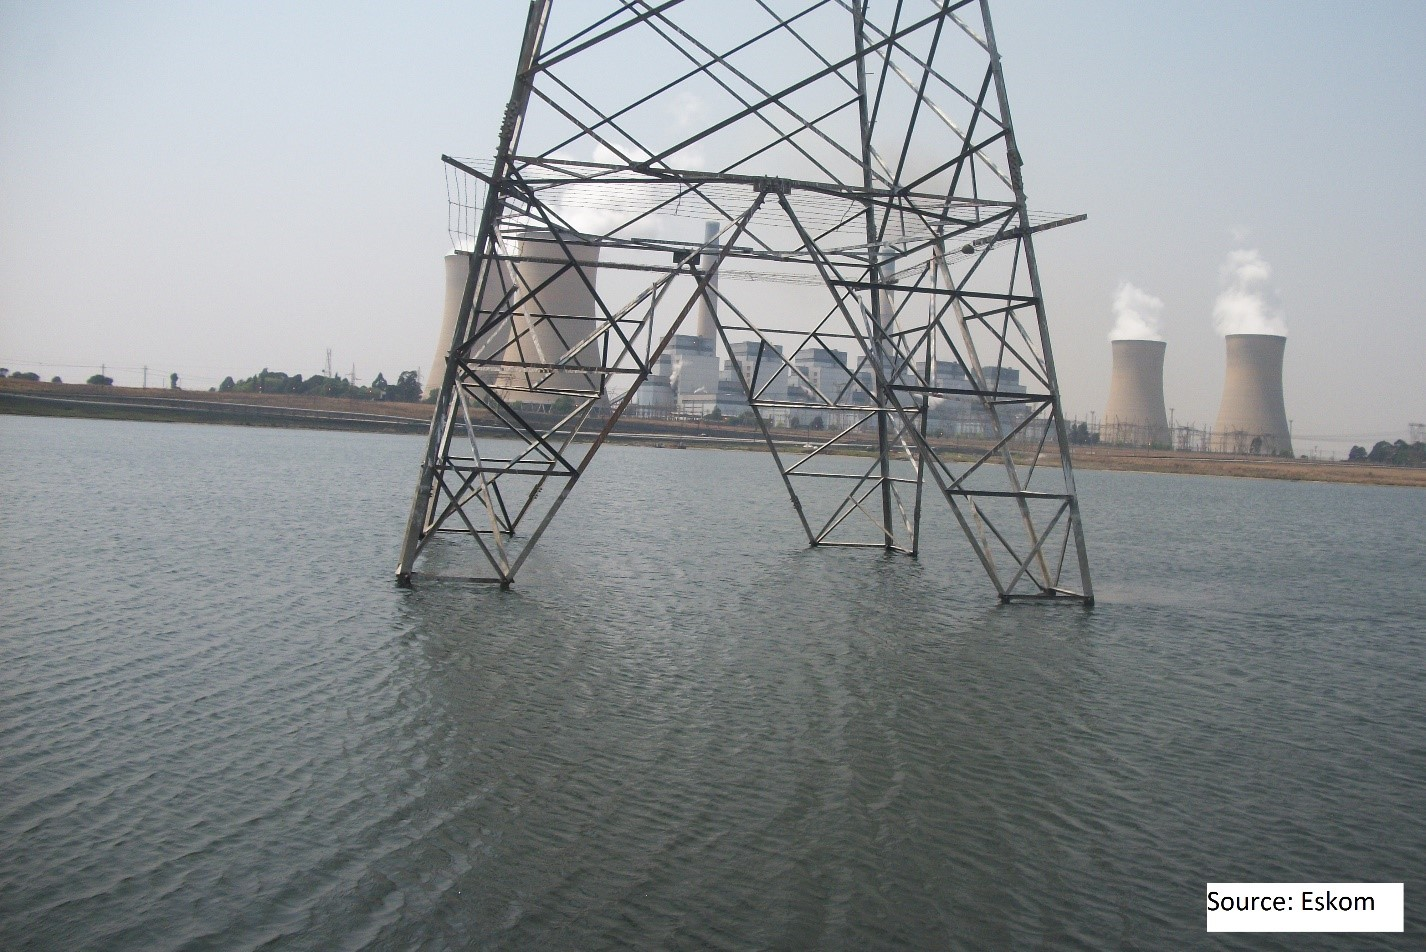 Impacts of weather and climate extremes on electricity transmission